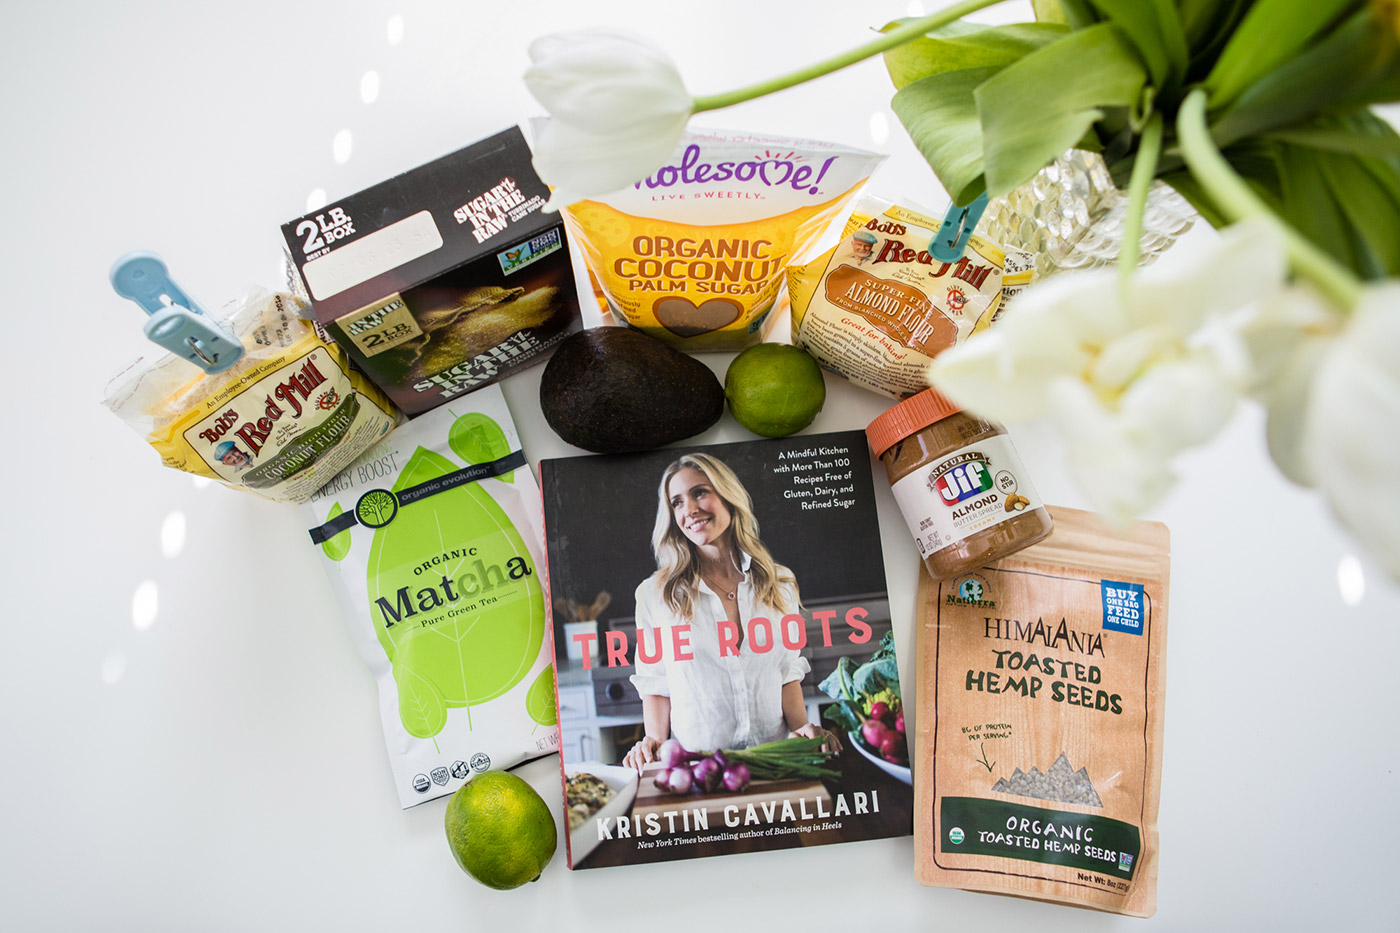 True Roots Cookbook Review featured by top US lifestyle blog, The HSS Feed.